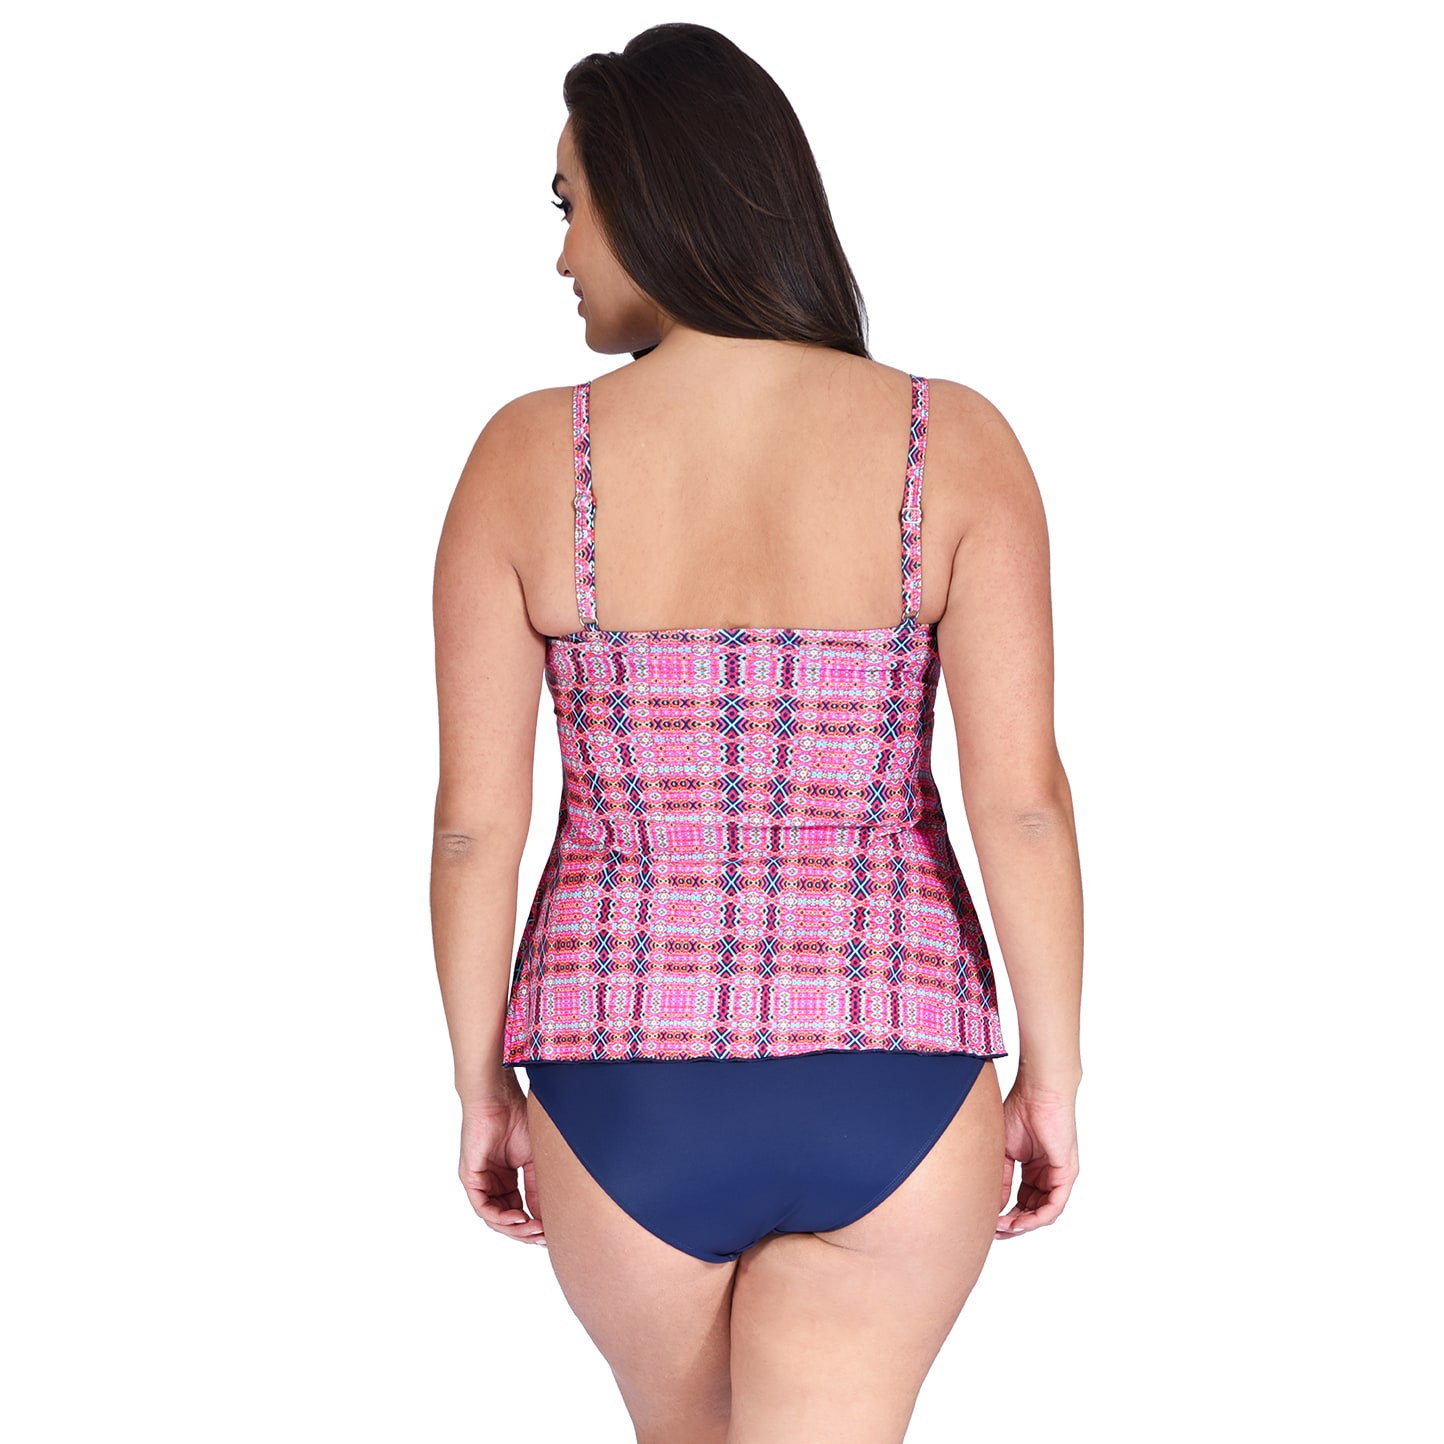 dc8e55aa171 Shop Drape Bandeau Plus Size Women's Tankini Top by Mazu Swim - Free  Shipping On Orders Over $45 - Overstock - 14724935